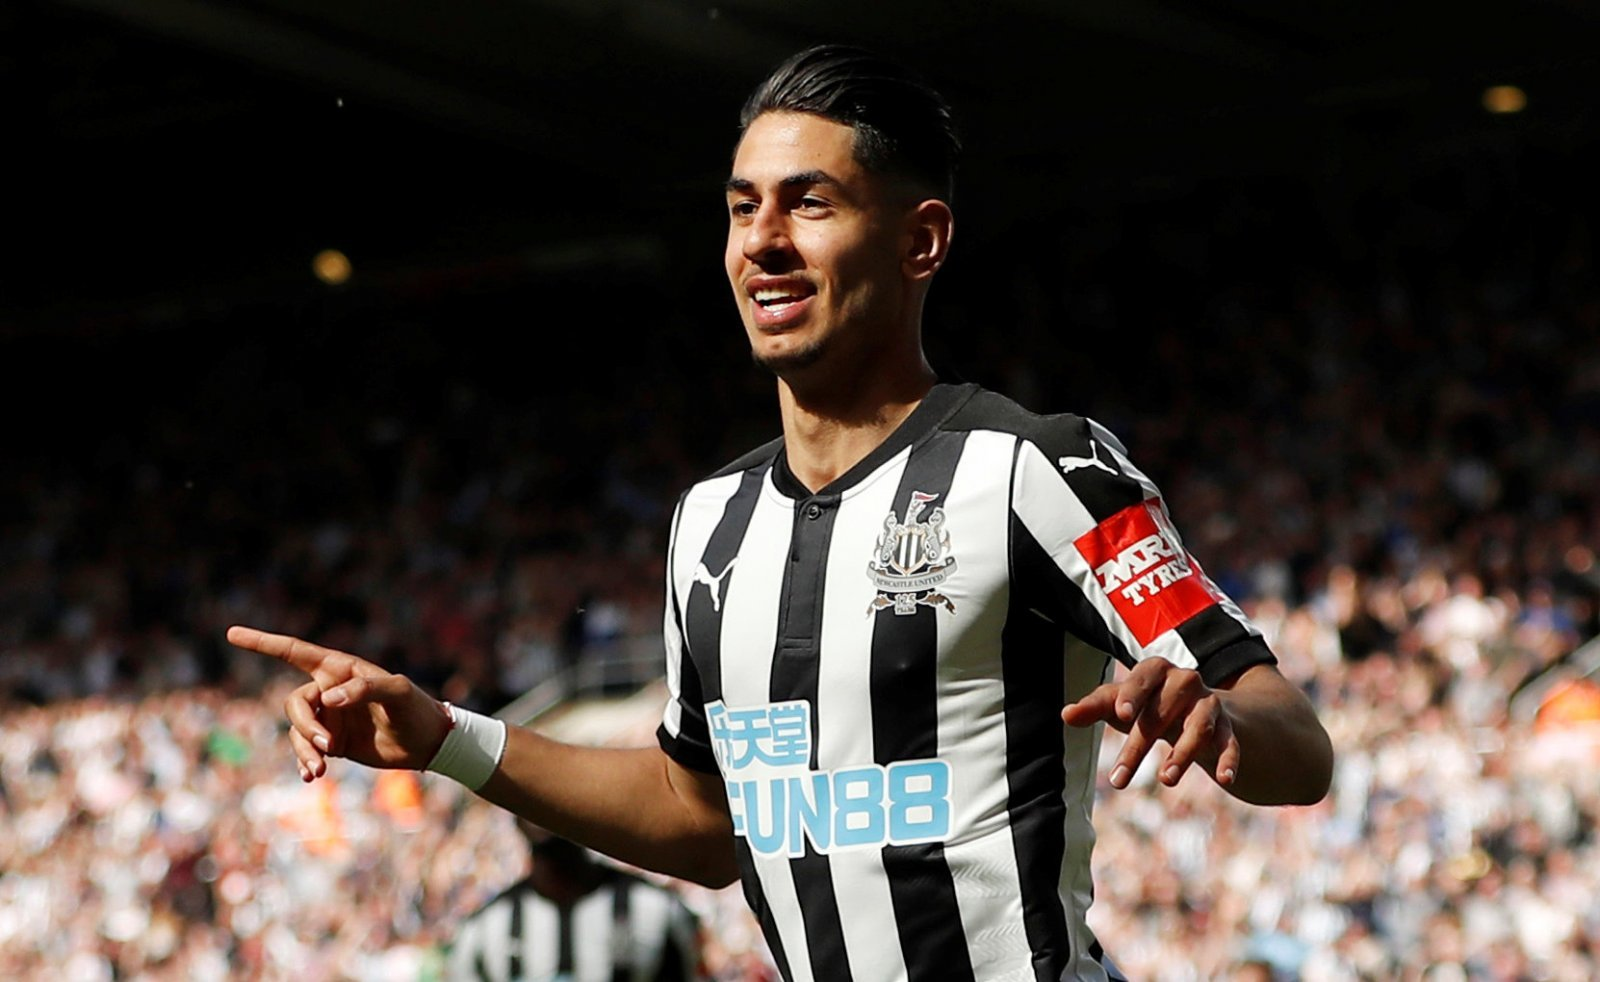 Newcastle fans on Twitter really want to see an Ayoze Perez goal